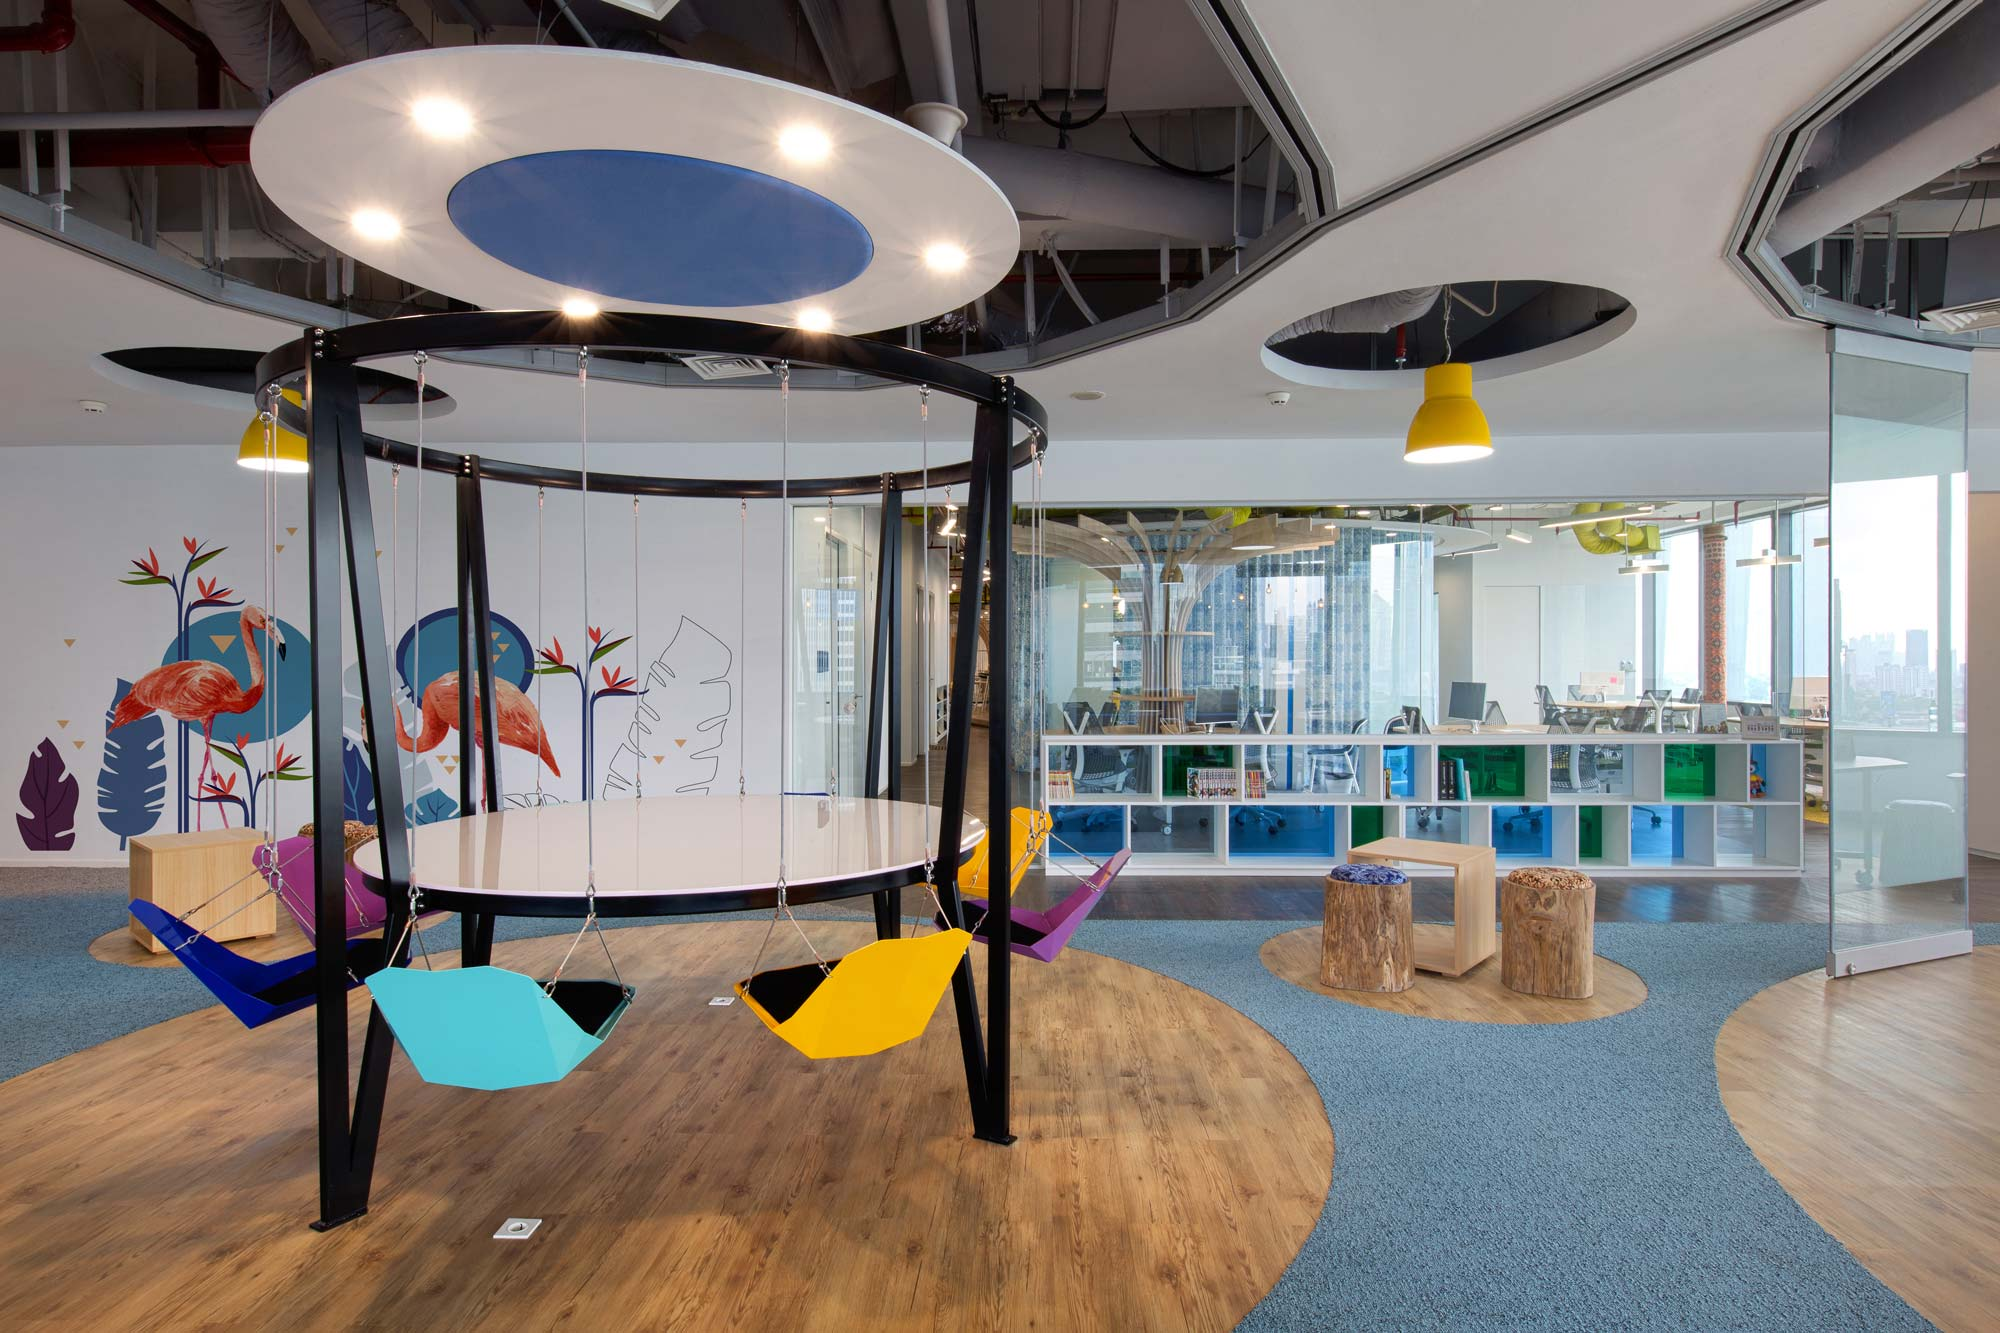 Fun and colorful informal meeting area with swingchairs in DANA's new office in Jakarta. Interior Design + Build by AVIP